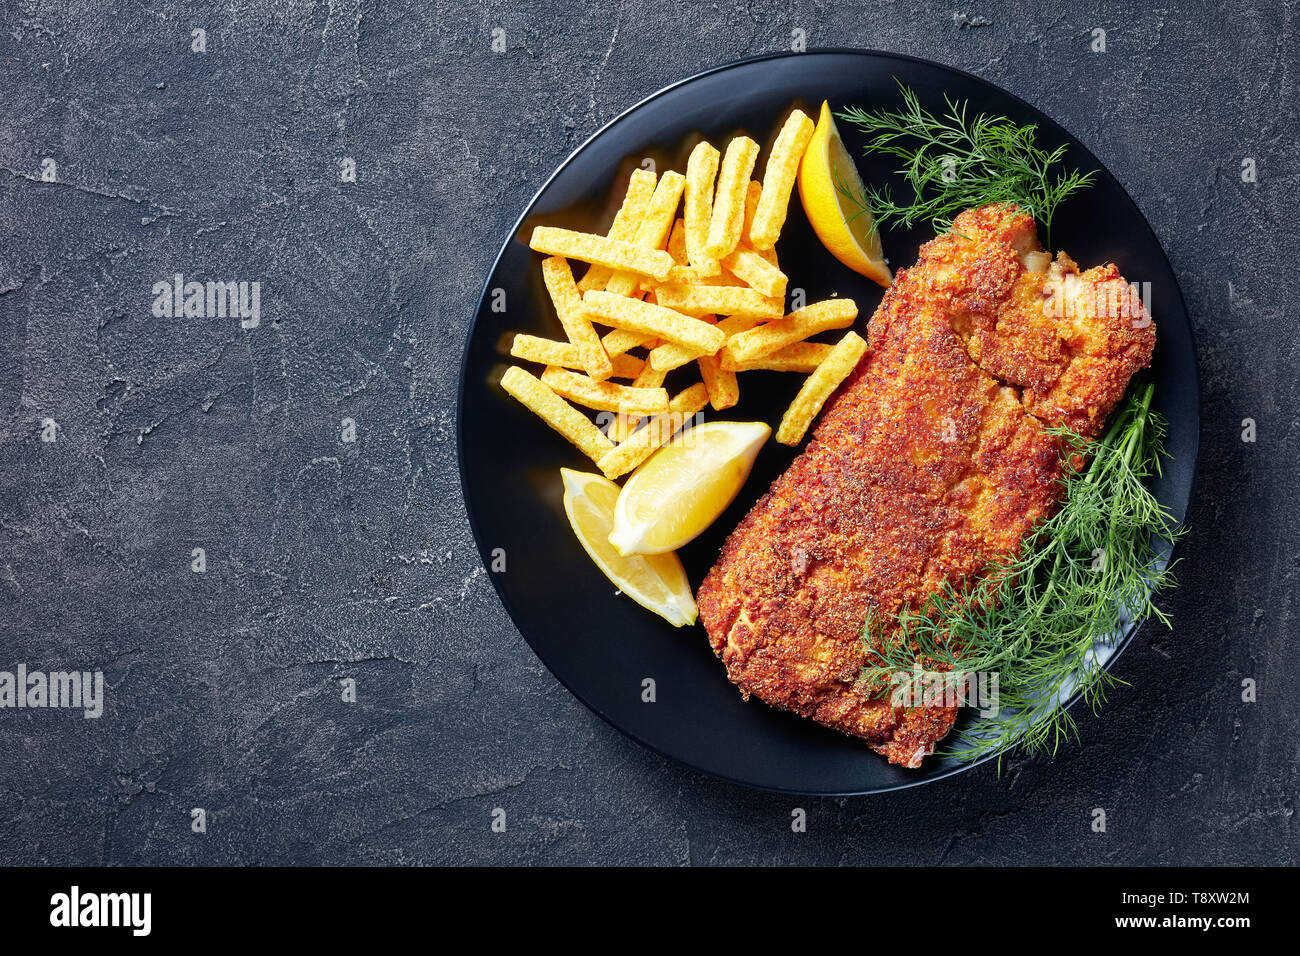 Breaded hake fillet served on a black plate with chips, fresh dill and lemon slices, view from above, flatlay, copy space - Stock Image